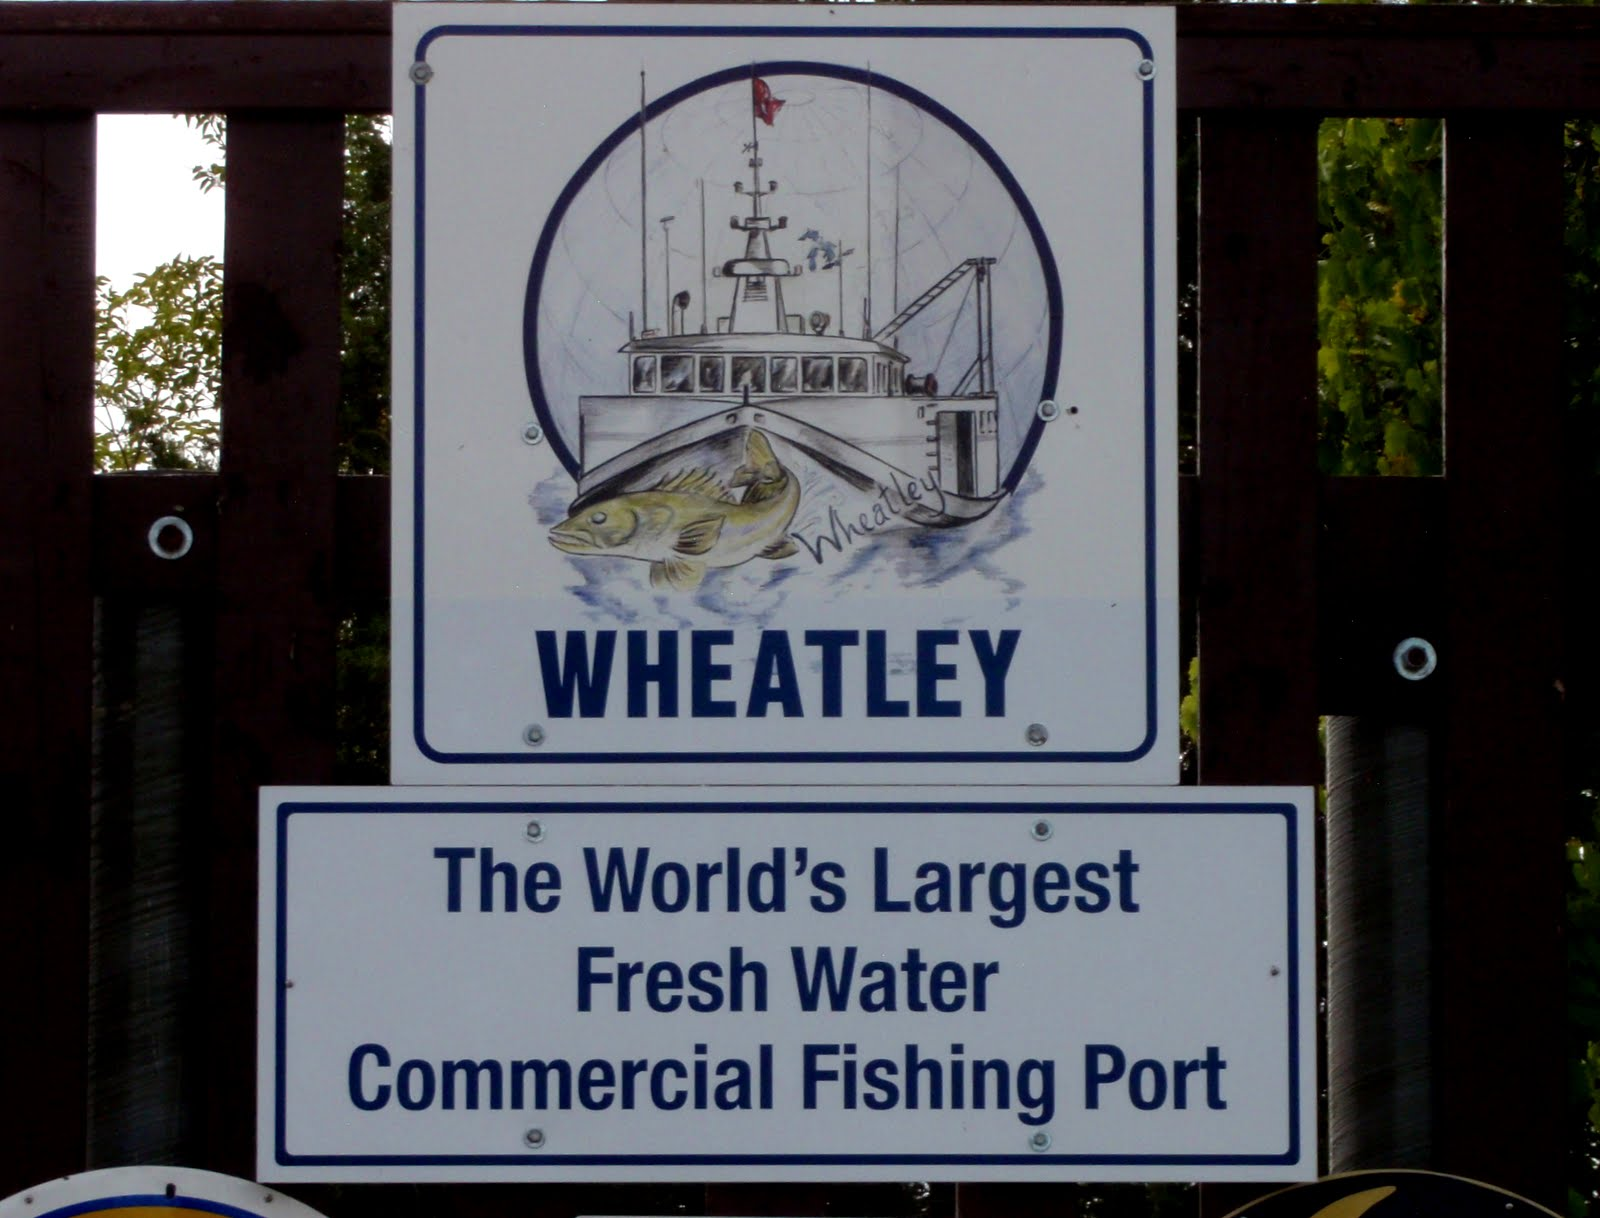 Sign, Wheatley, The world's largest fresh water commercial fishing port.